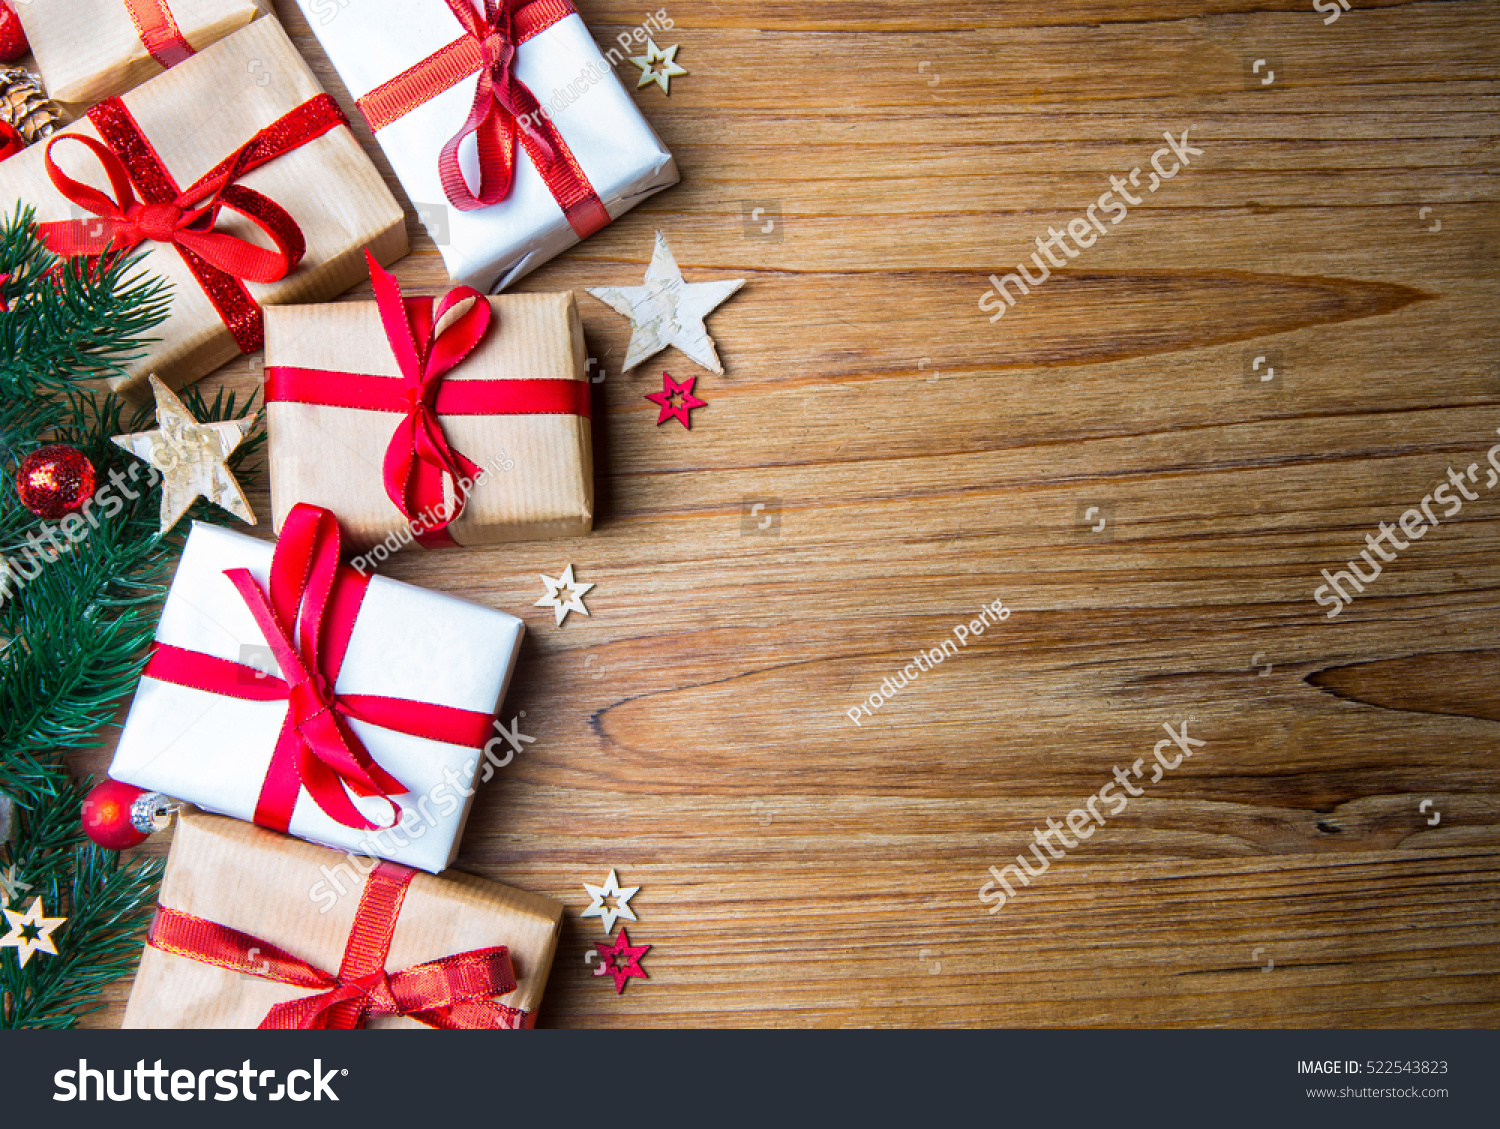 Christmas wooden background view tree gift stock photo